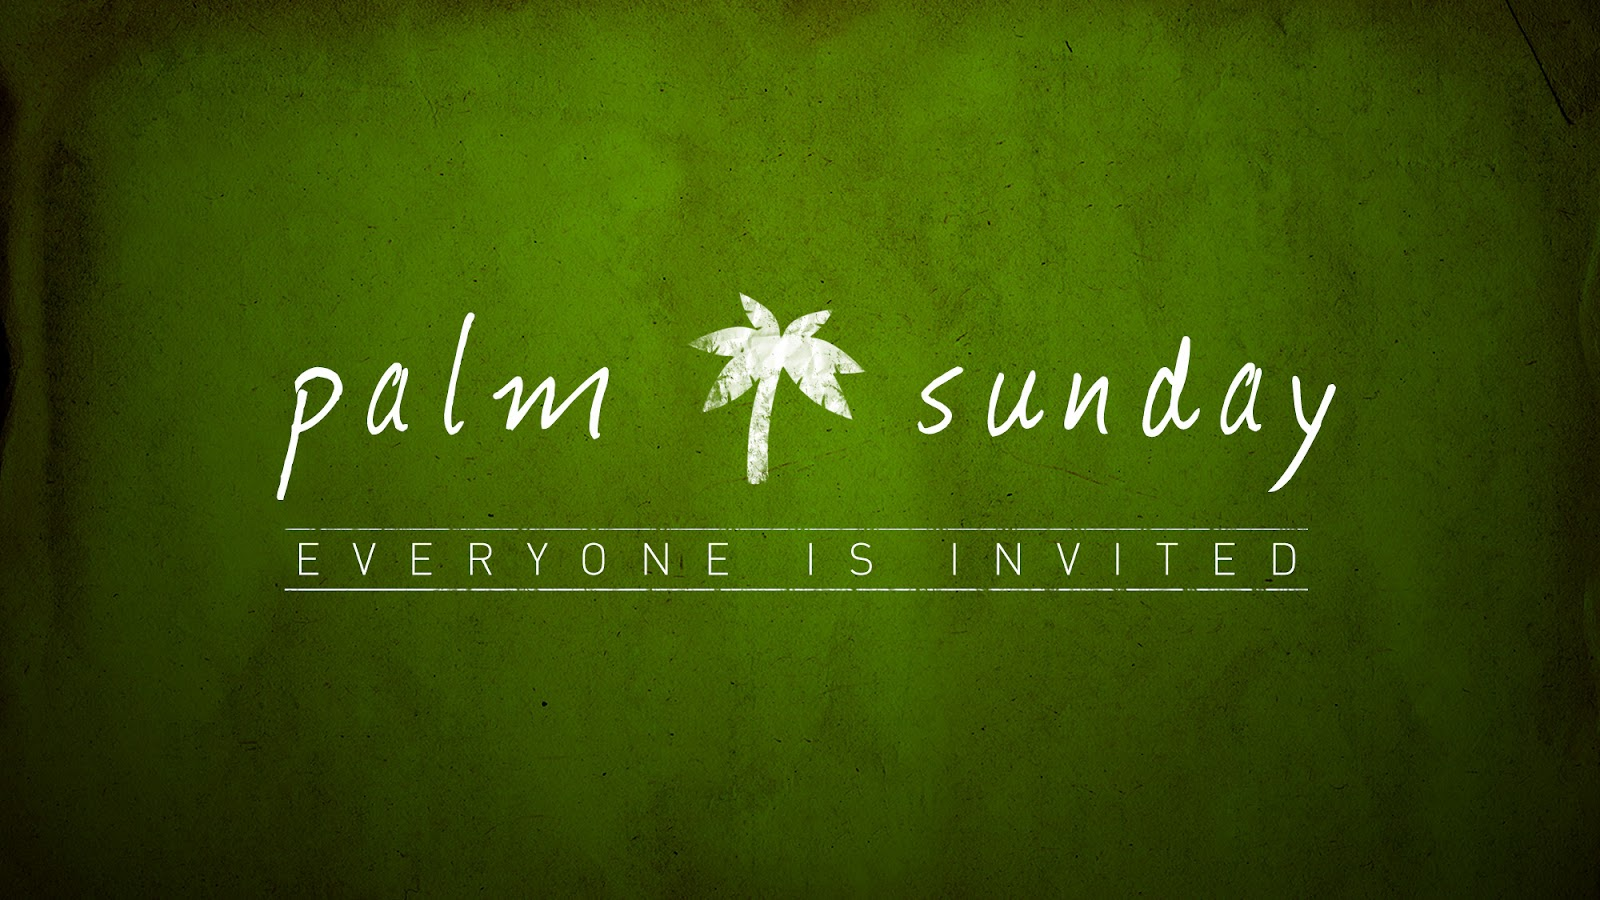 28 palm sunday 2017 wish pictures and images palm sunday everyone is invited card kristyandbryce Images